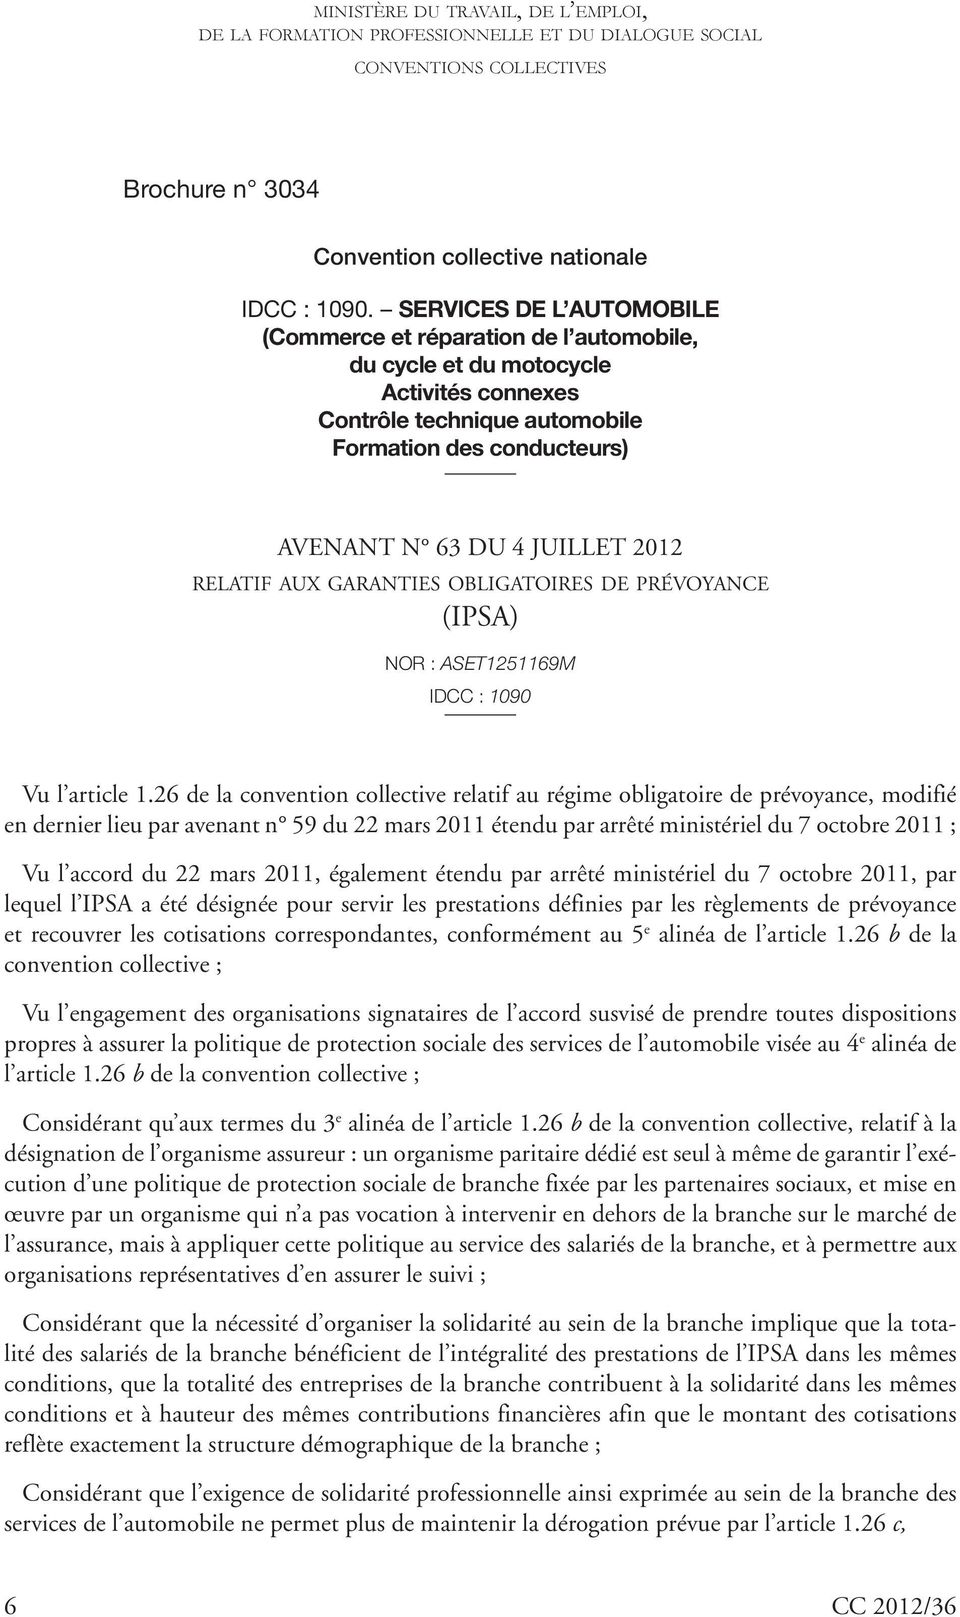 2012 36 29 Septembre 2012 B Ulletin Officiel Conventions Collectives